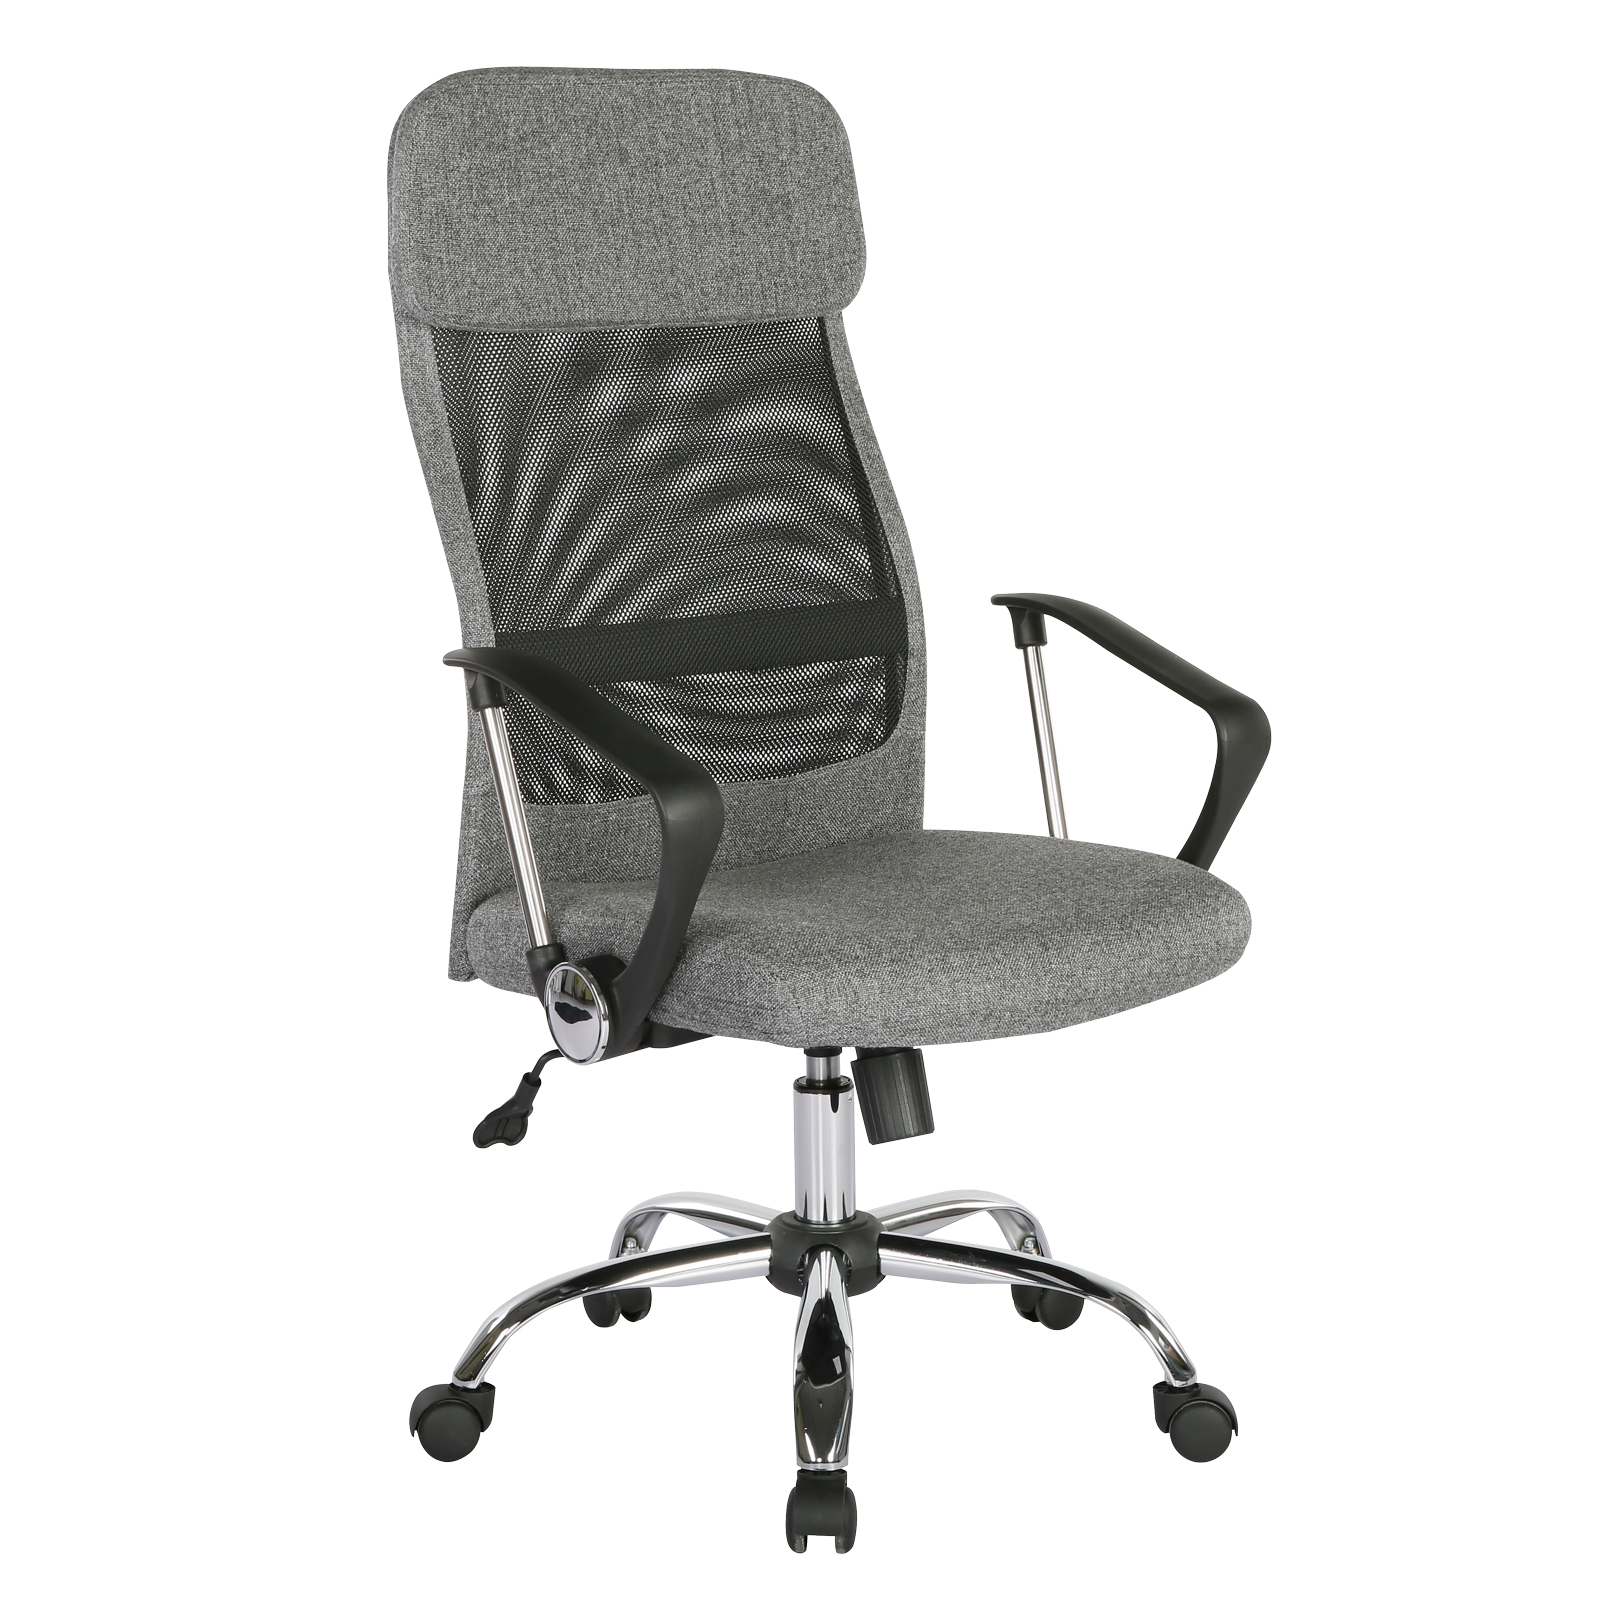 Desk Chairs Chord operator chair with mesh back and headrest